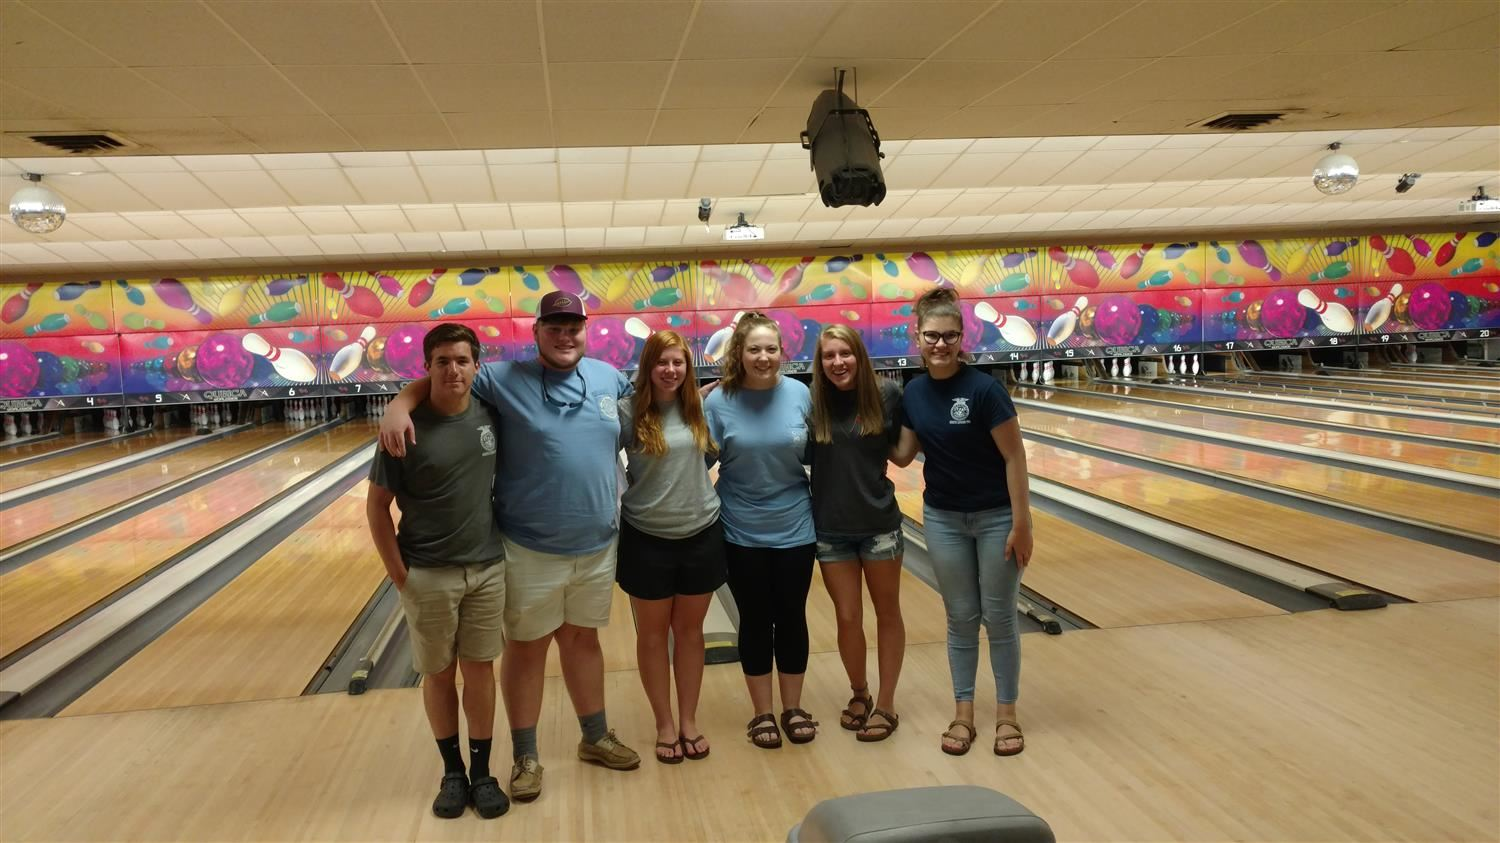 Students standing together posing for camera at bowling alley